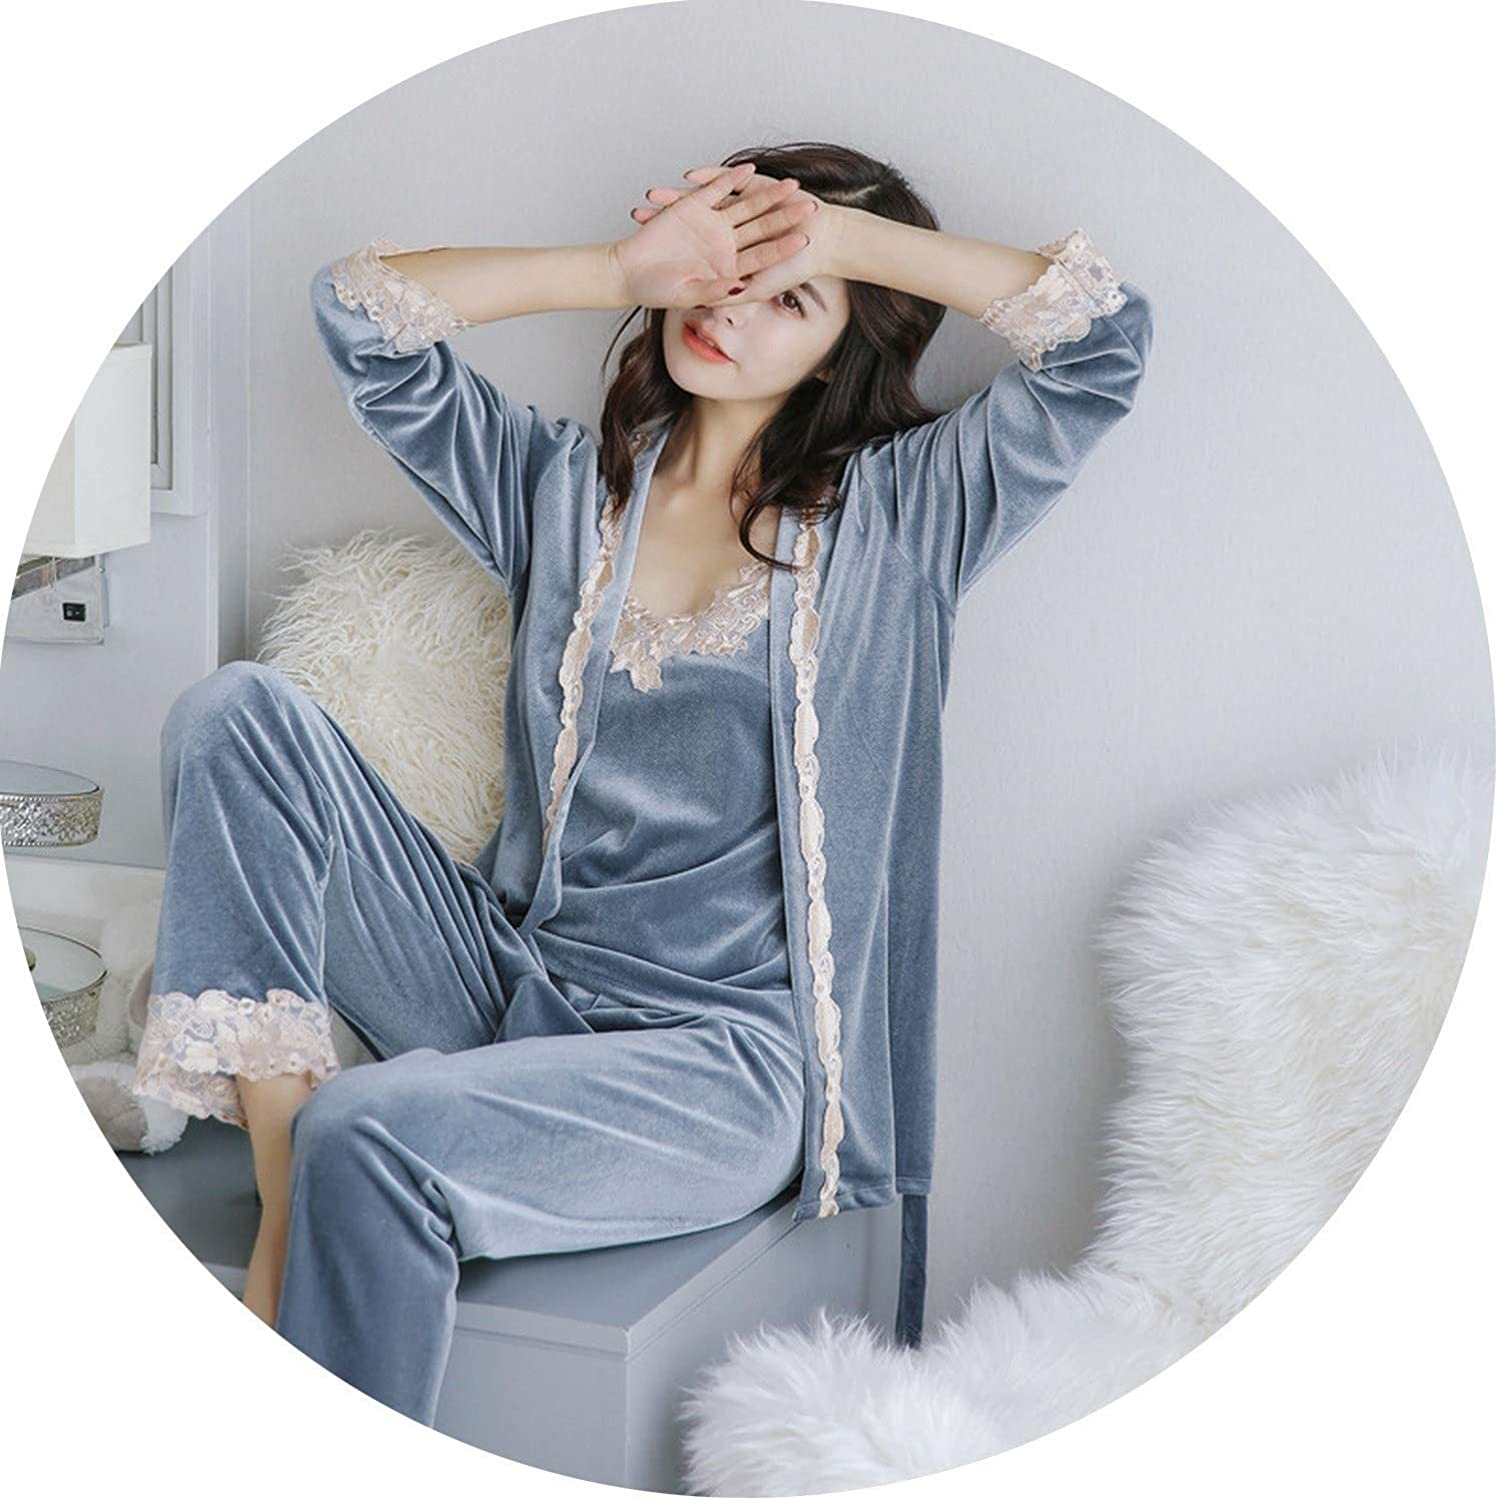 blueeshore Female Velvet Sleepwear Autumn Winter Pajamas Sexy Embroidery Sleep Lounge Pajamas for Women Pijama